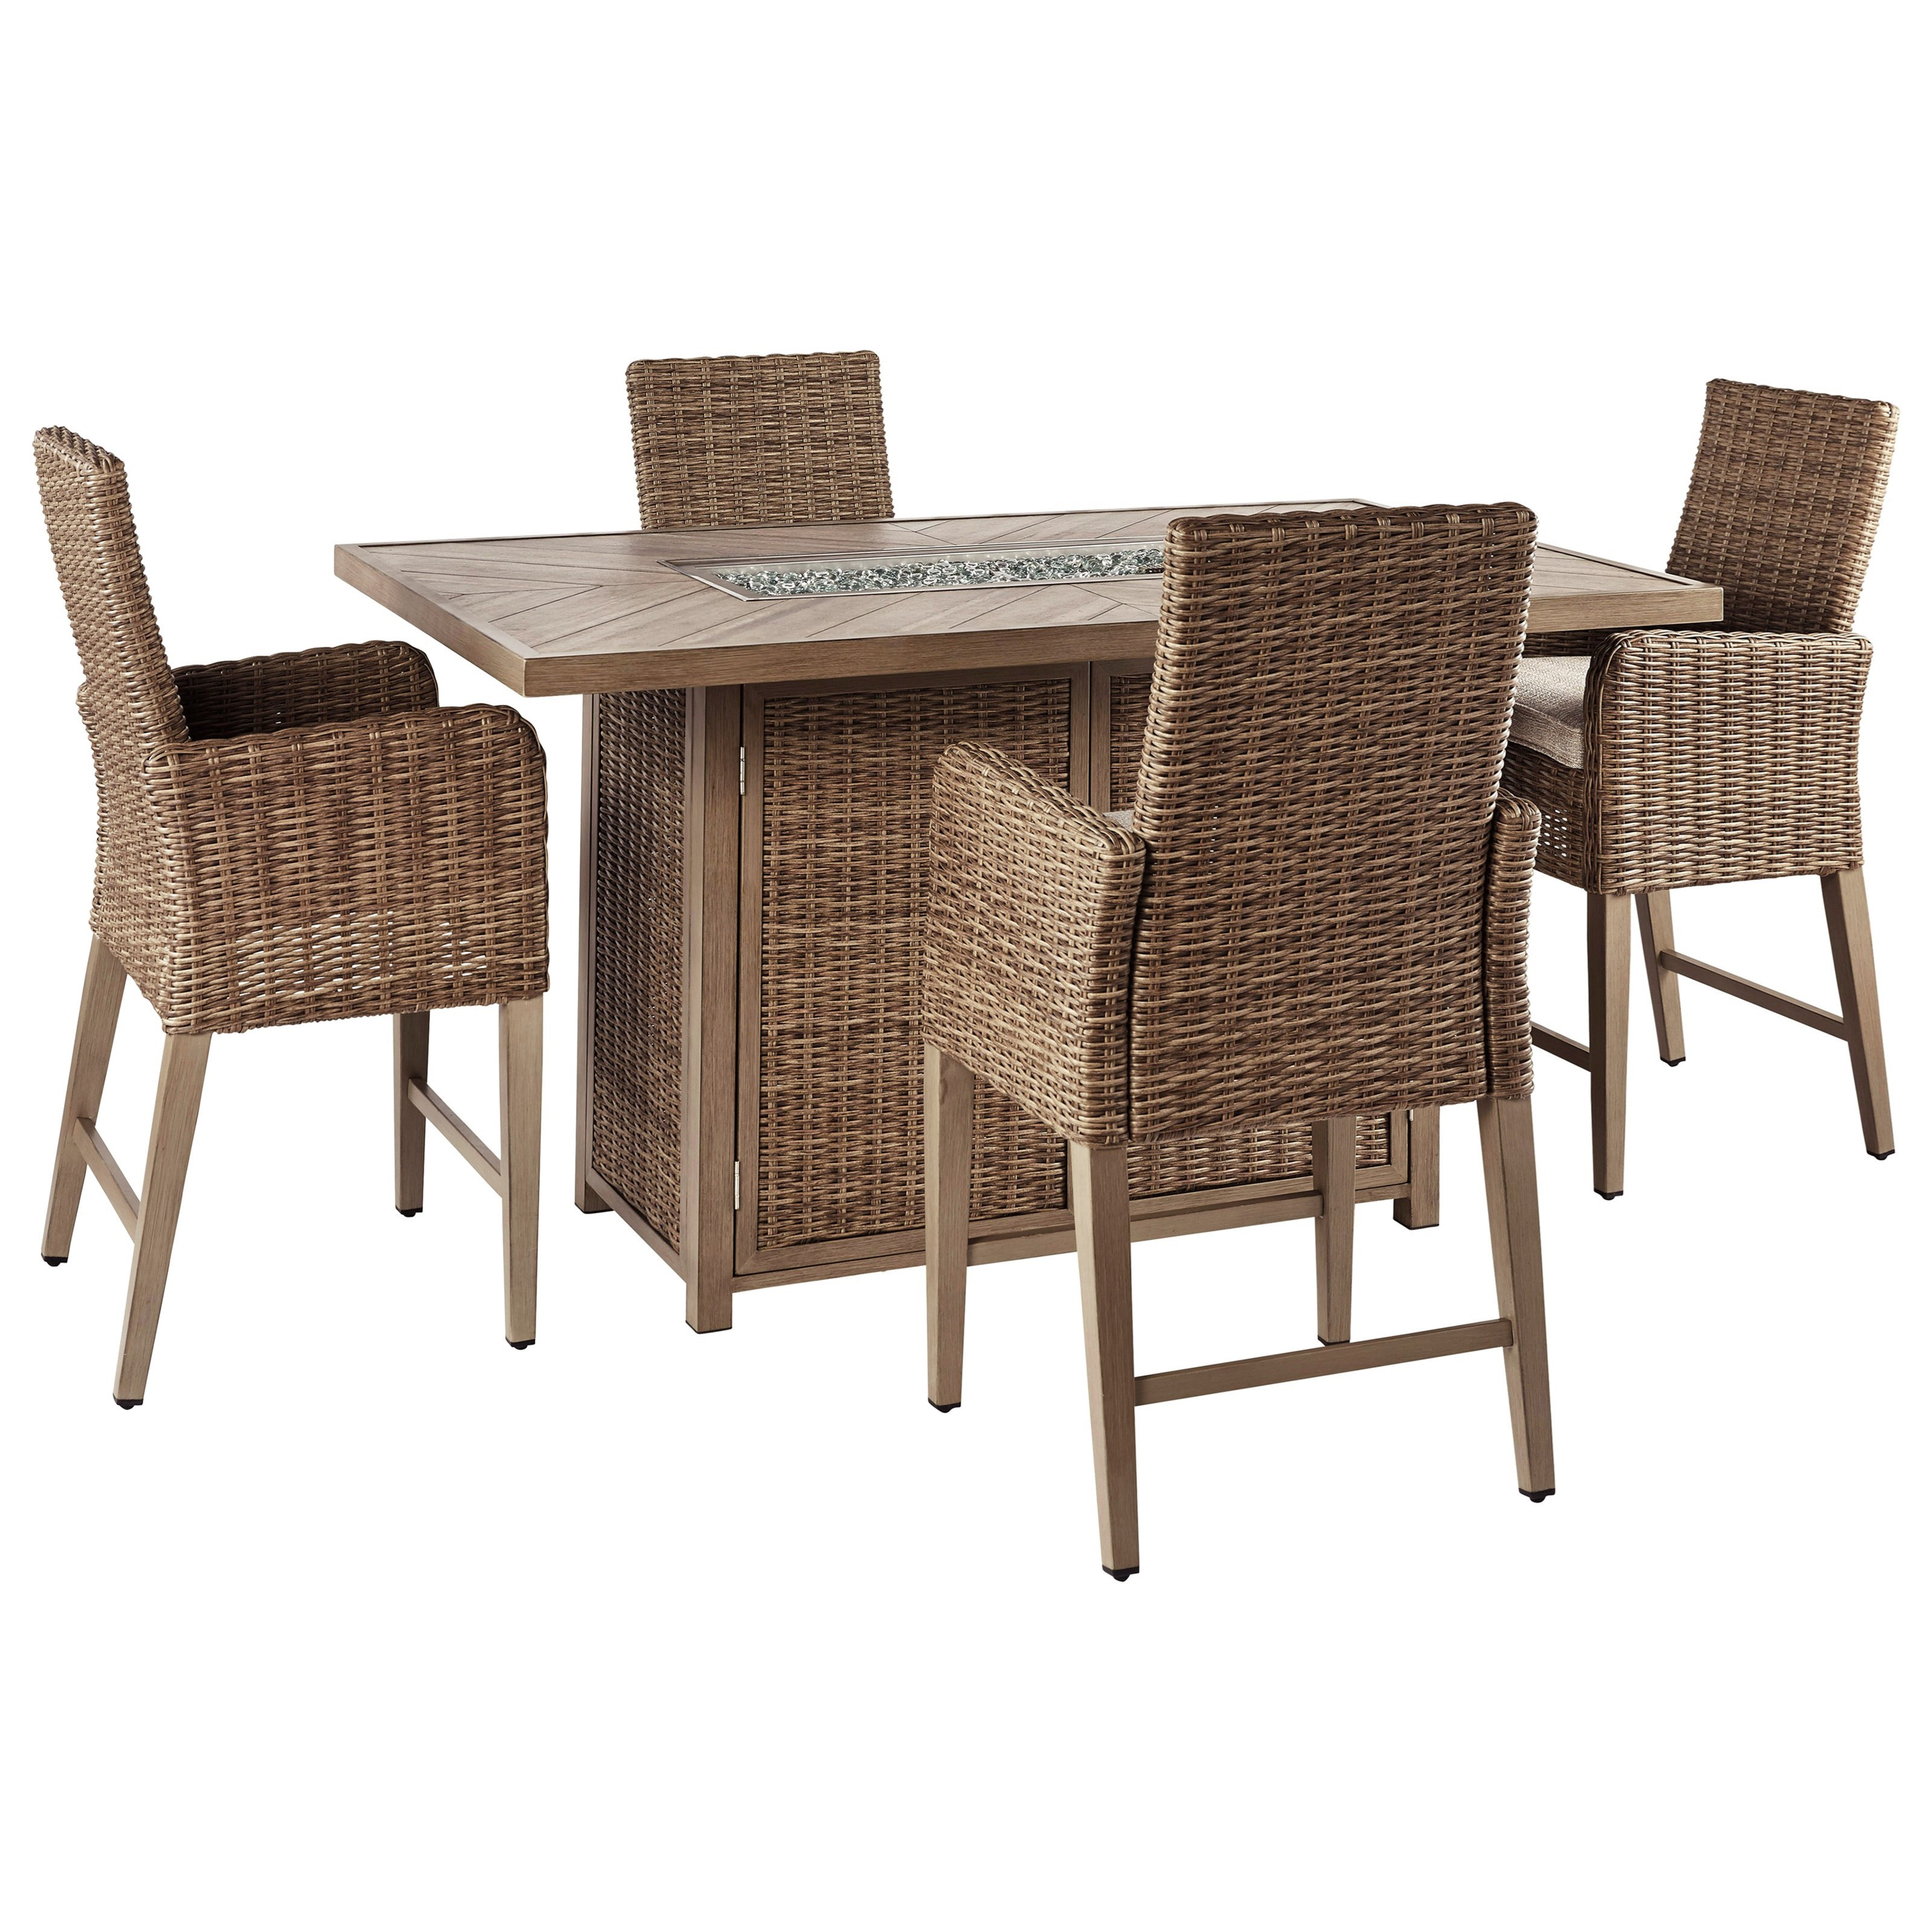 Beachcroft 5 Piece Outdoor Bar Fire Pit Table Set by Signature at Walker's Furniture